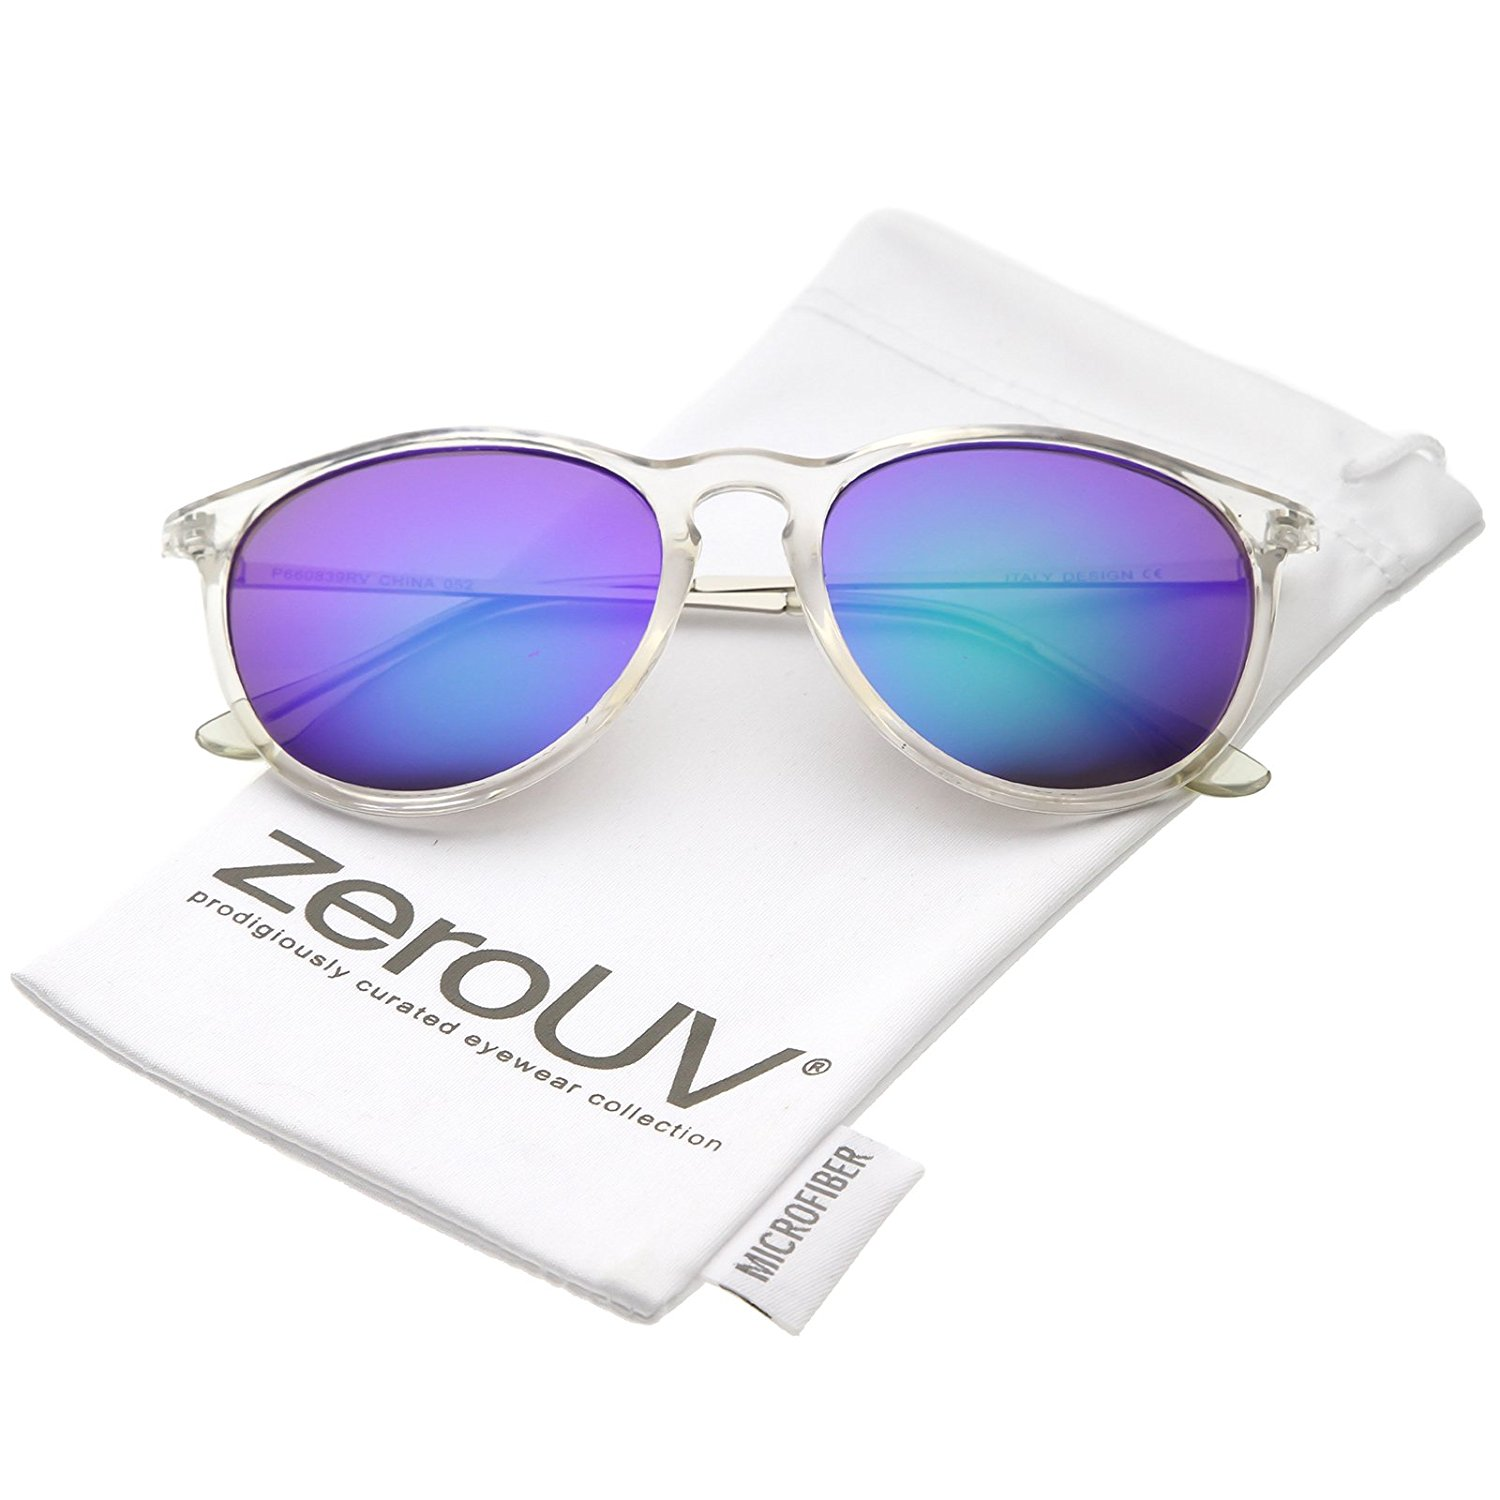 f6480fdc888 Get Quotations · zeroUV - Modern Metal Arms Round Mirrored Lens Horn Rimmed  Sunglasses 52mm